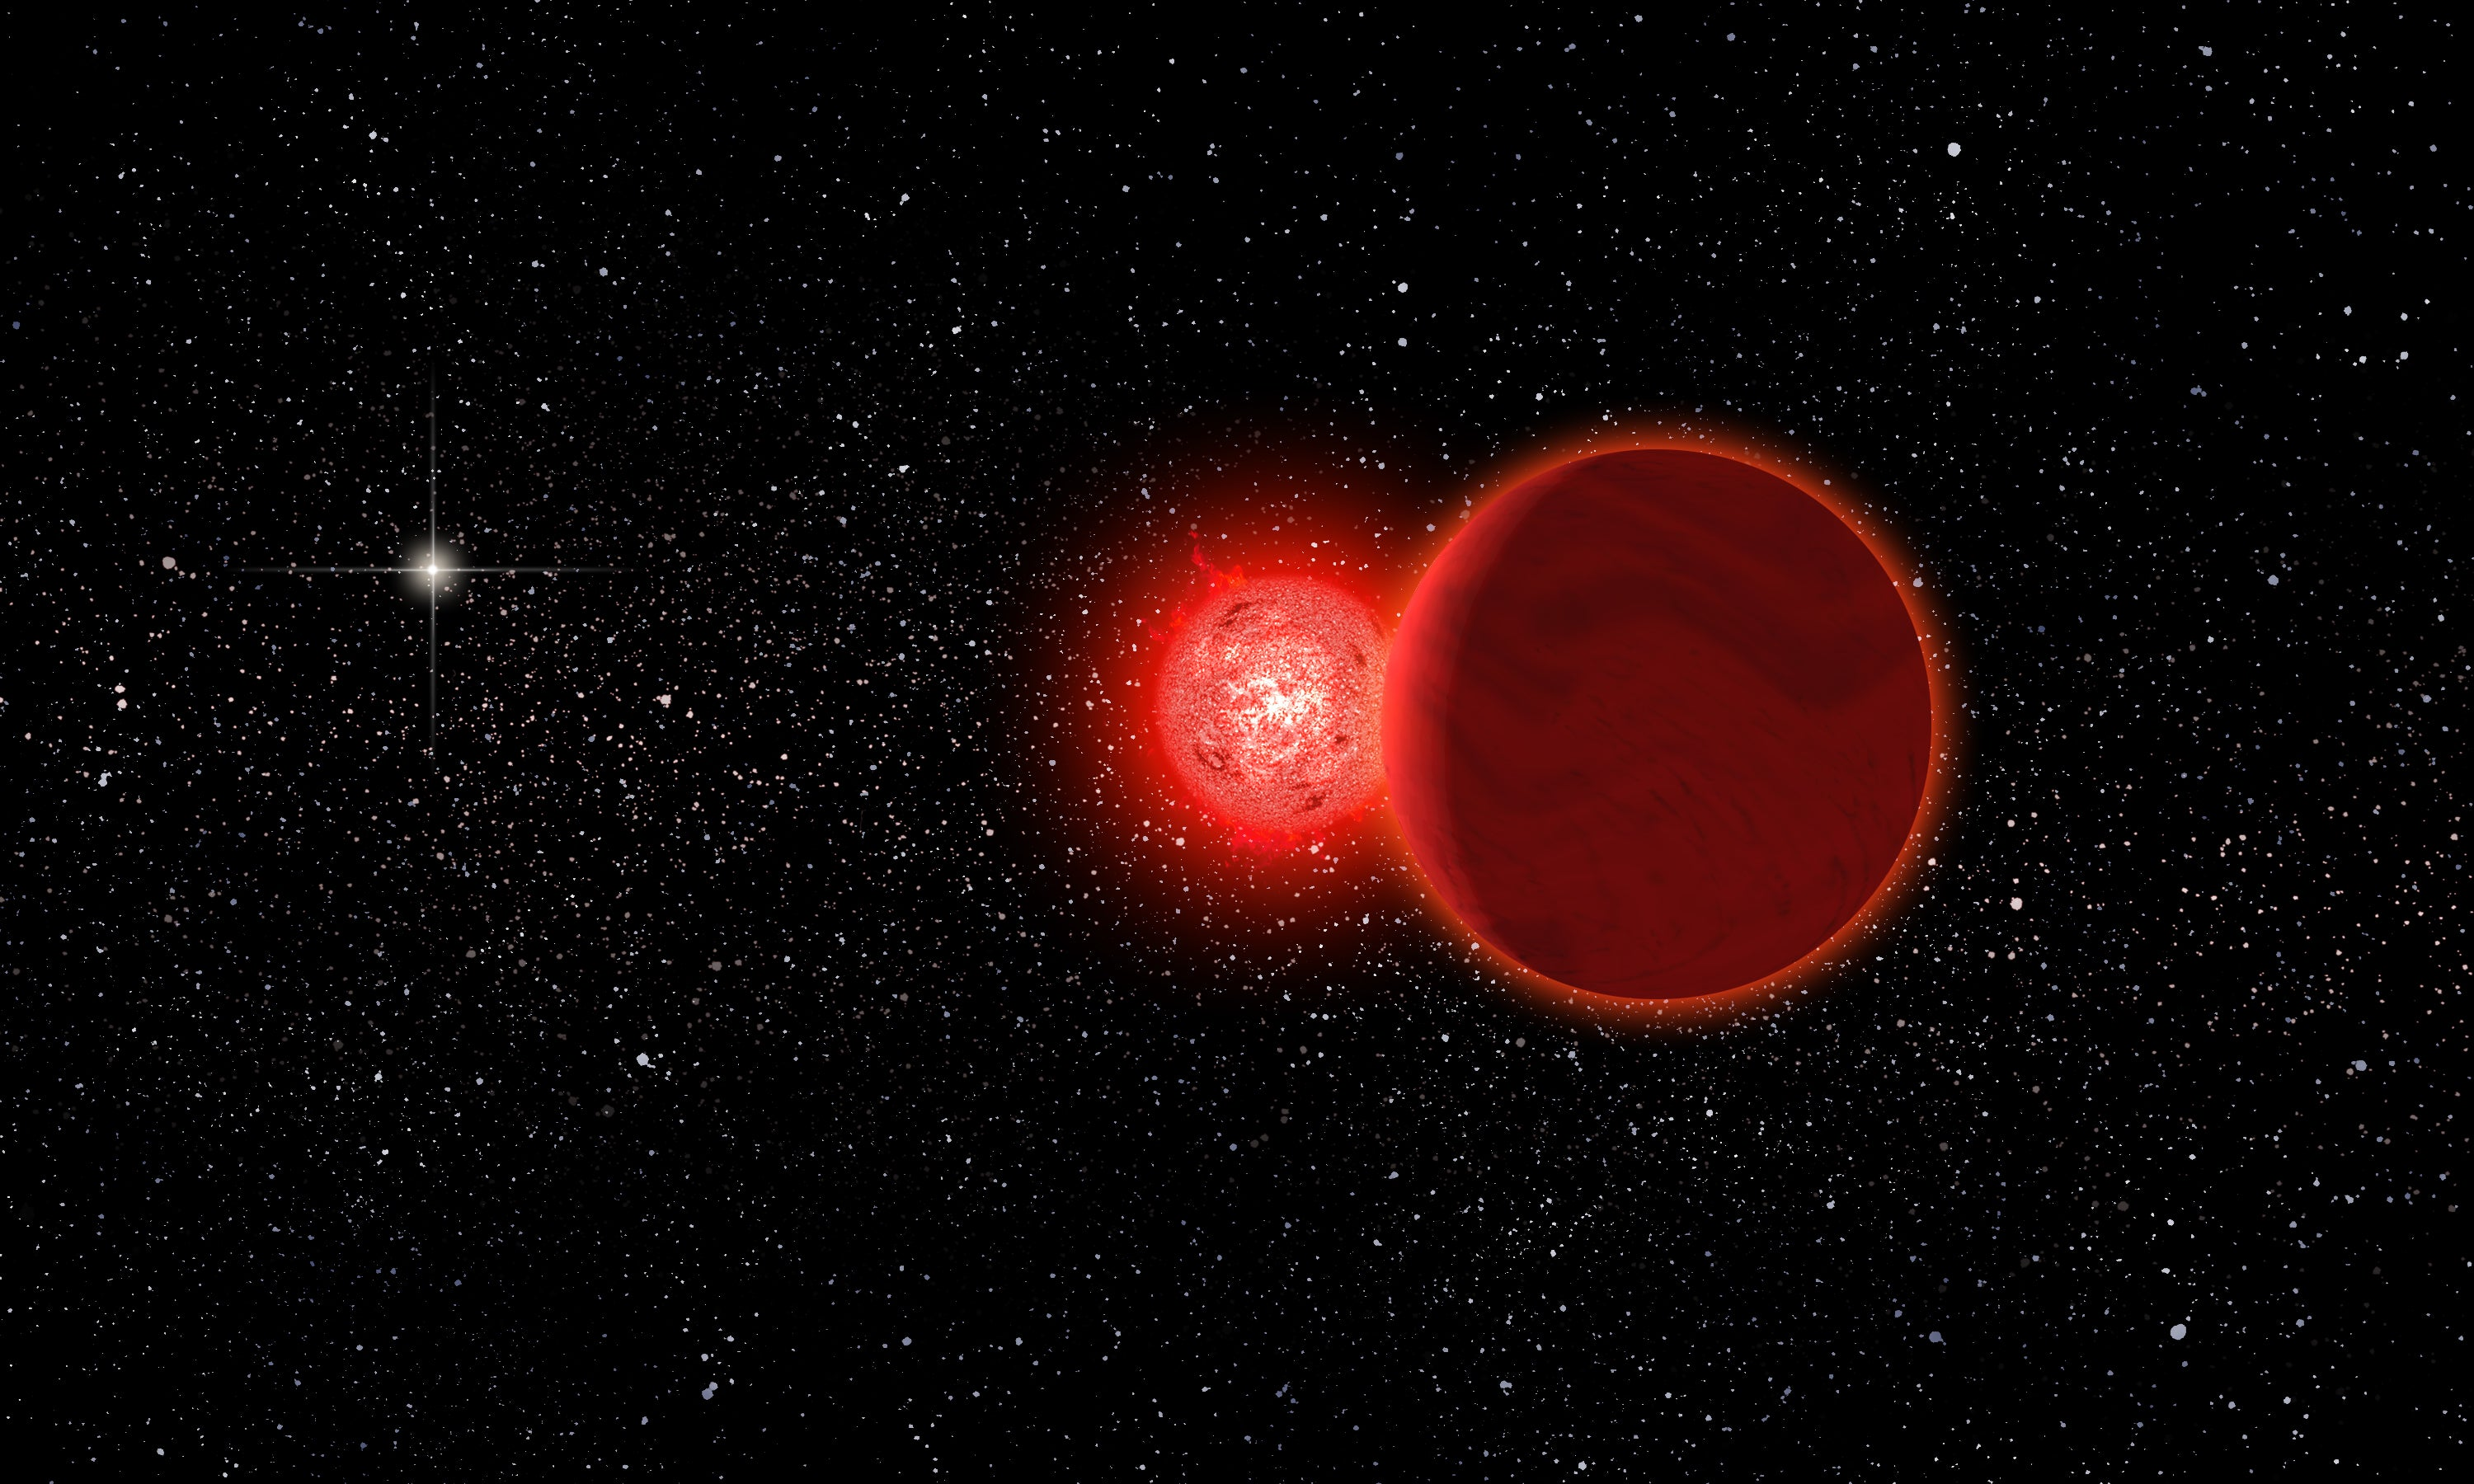 A Visiting Star Jostled Our Solar System 70,000 Years Ago